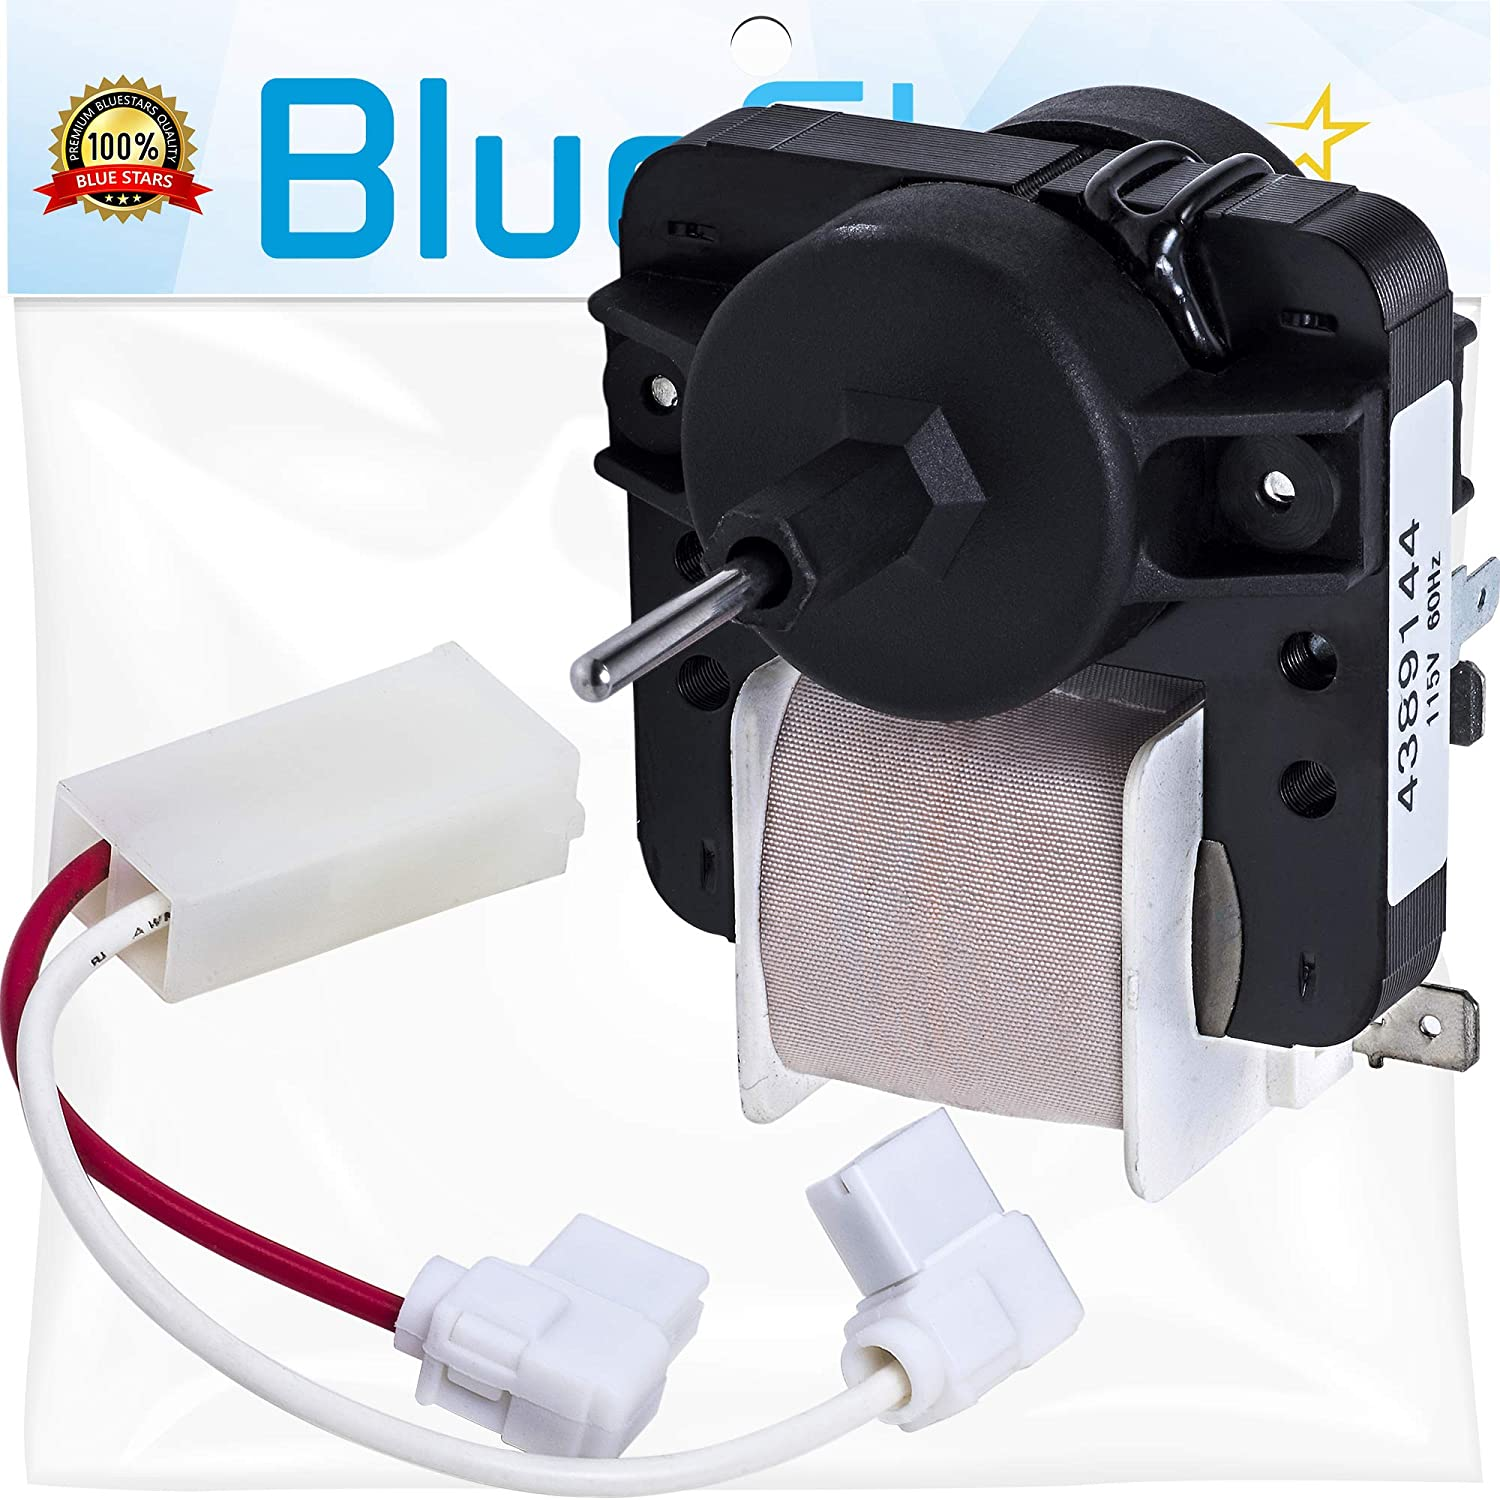 Ultra Durable 4389144 Refrigerator Evaporator Motor Replacement Part by Blue Stars - Exact Fit for Whirlpool Kenmore Refrigerators - Replaces 2162404 2149299 PS557957 W10312647